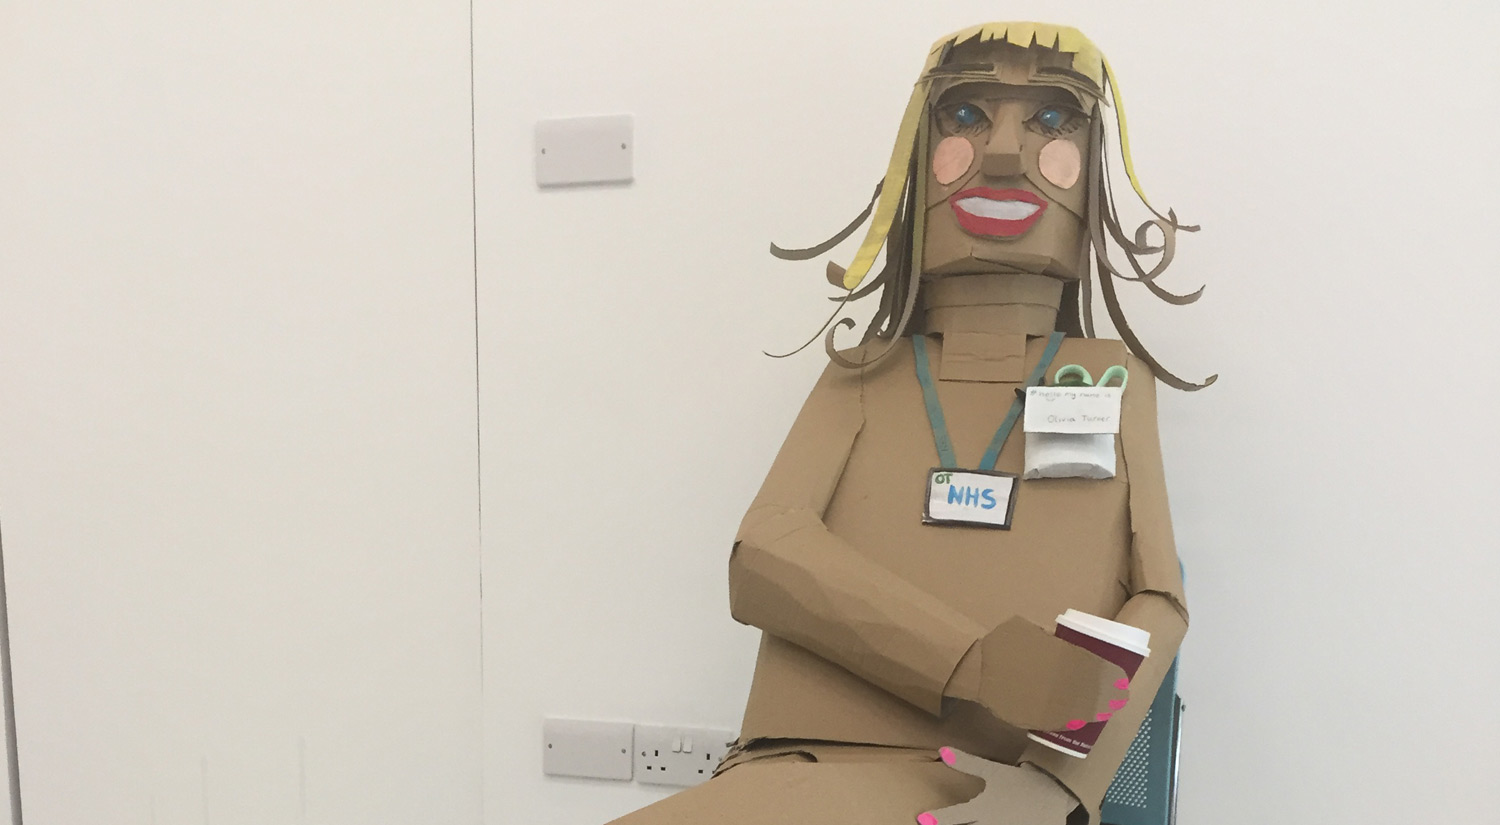 Life-size sculpture of an occupational therapist, created by Gracie's group